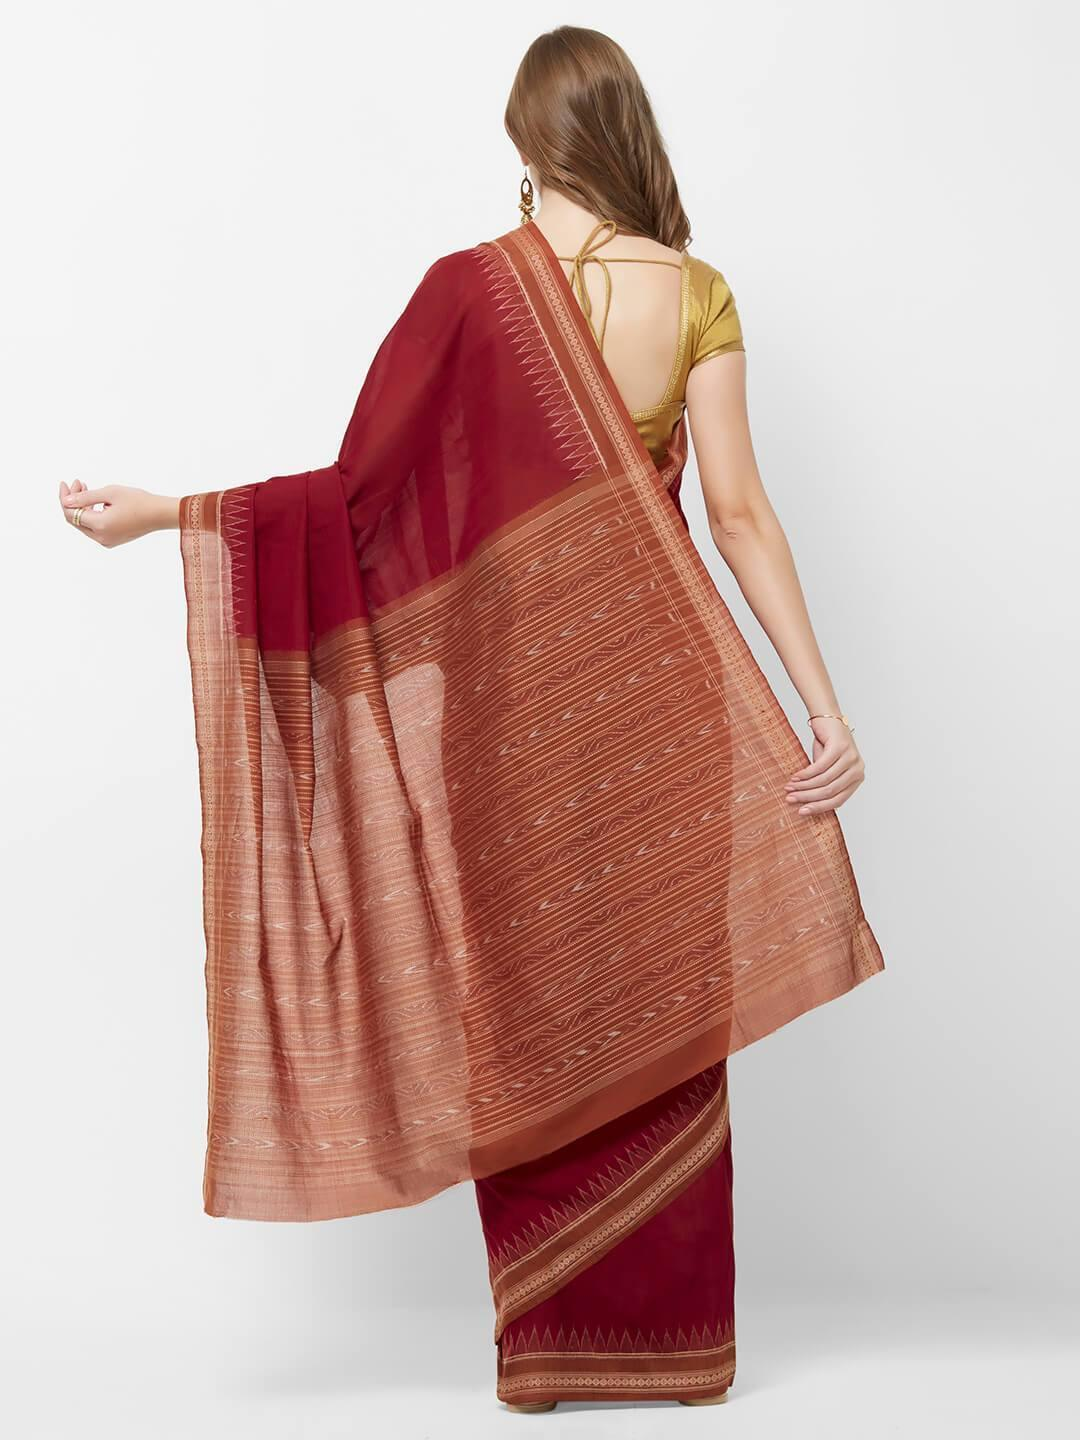 CraftsCollection.in - Maroon and Rust Odisha Sambalpuri Cotton Saree